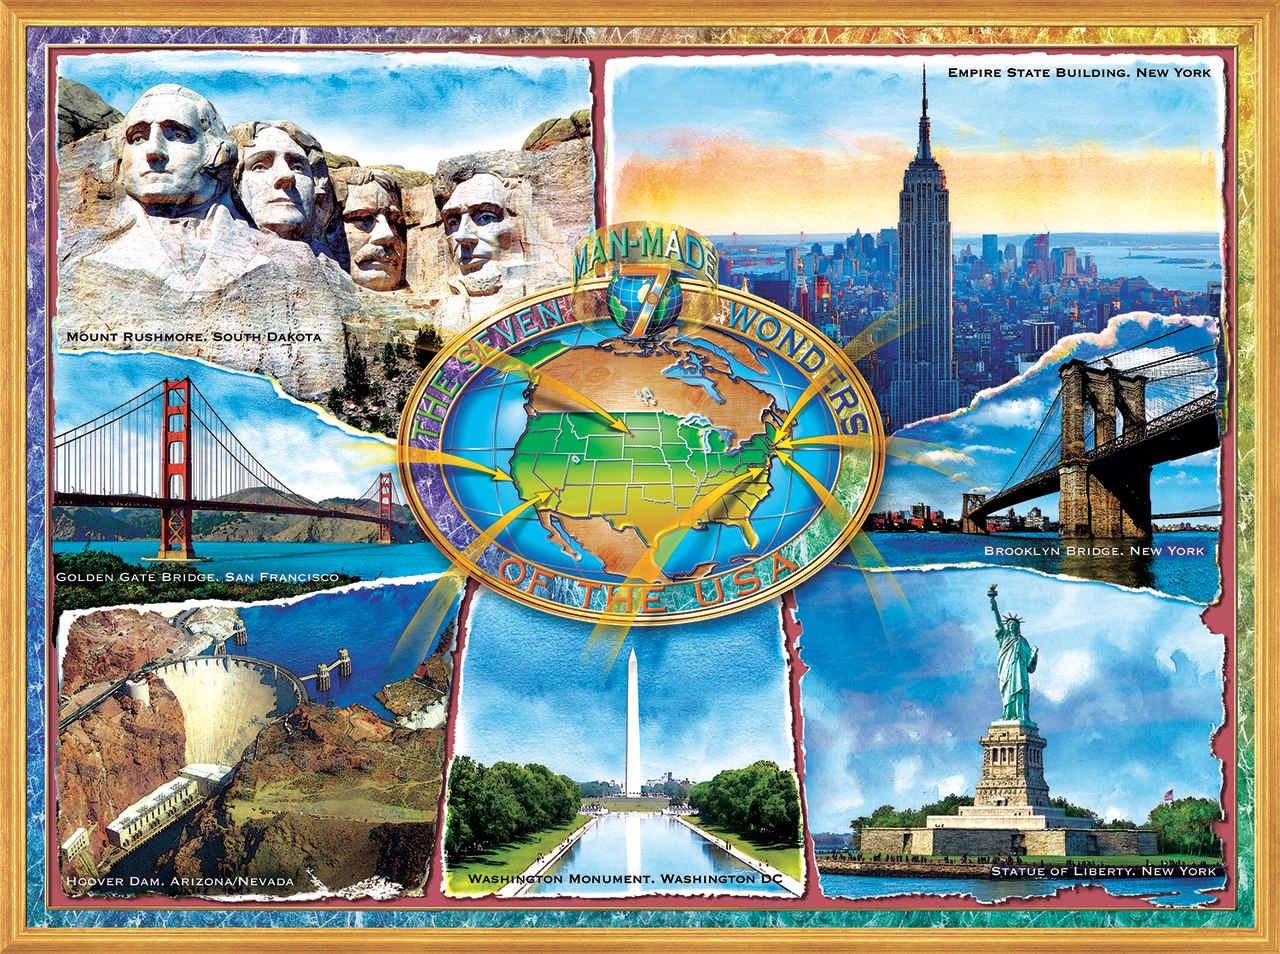 The 7 Manmade Wonders of the U.S.A. - 1000pc Jigsaw Puzzle By Sunsout  			  					NEW